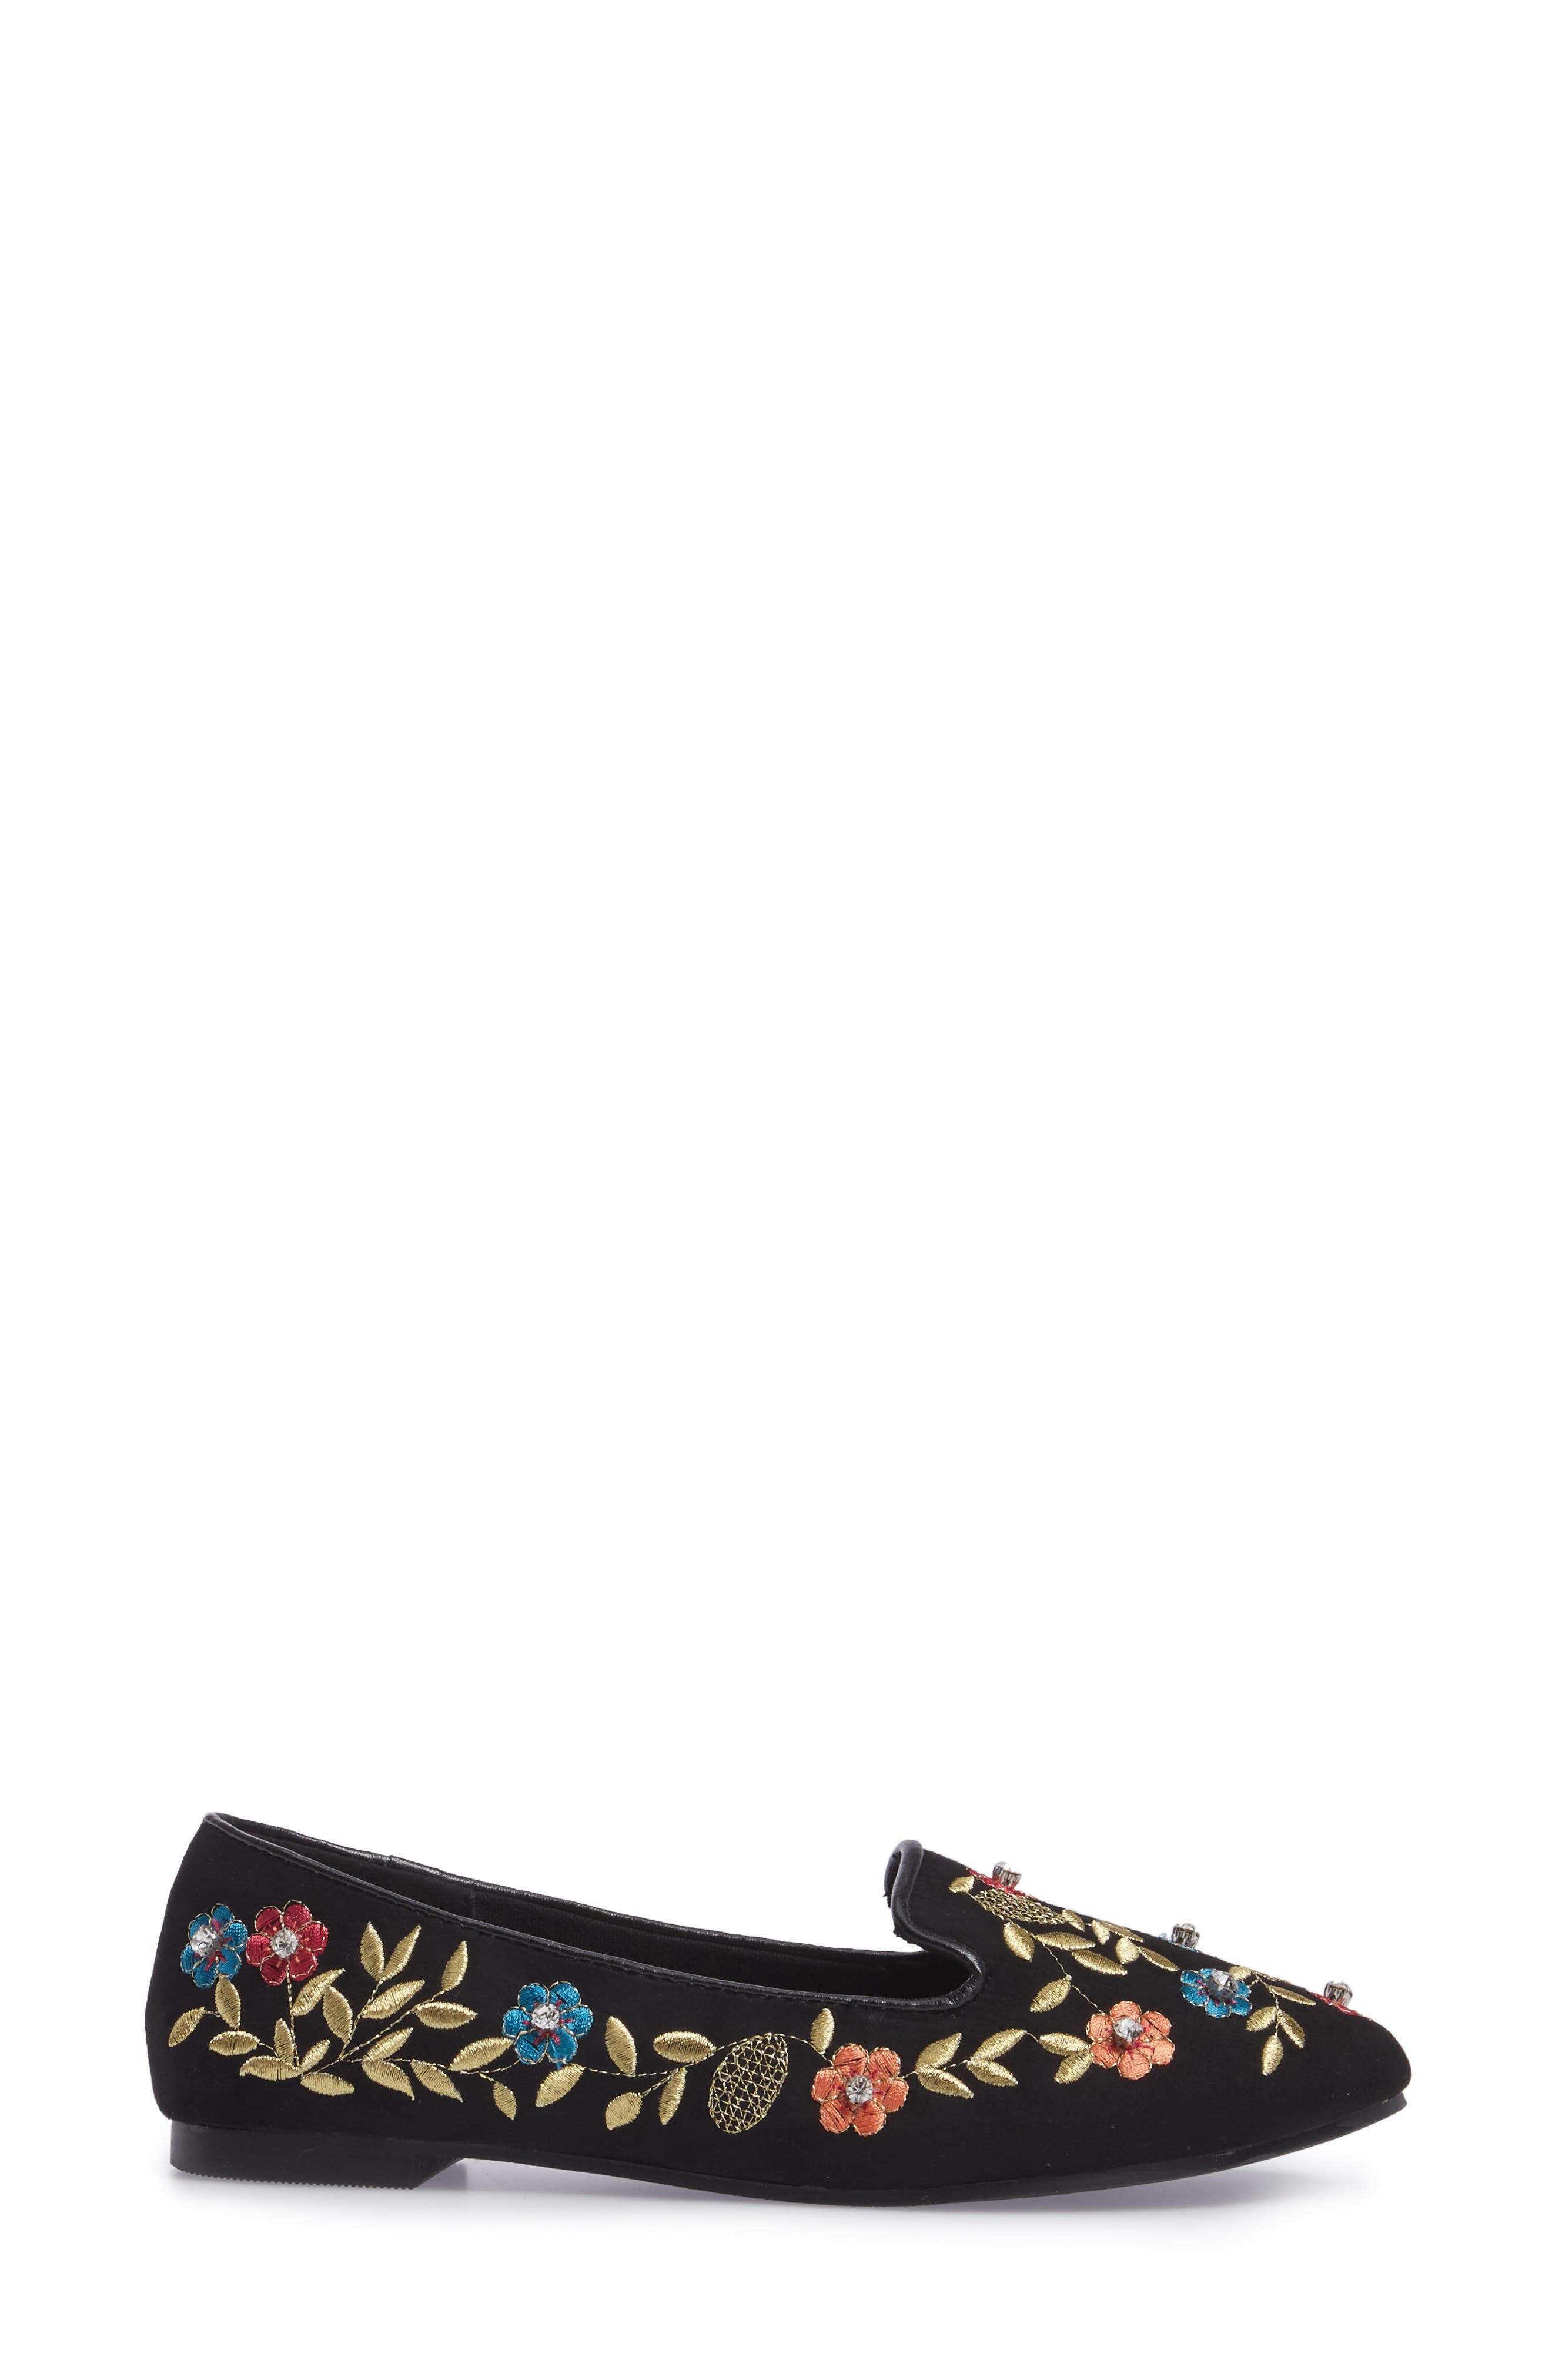 Sweetie Embroidered Loafer,                             Alternate thumbnail 3, color,                             001